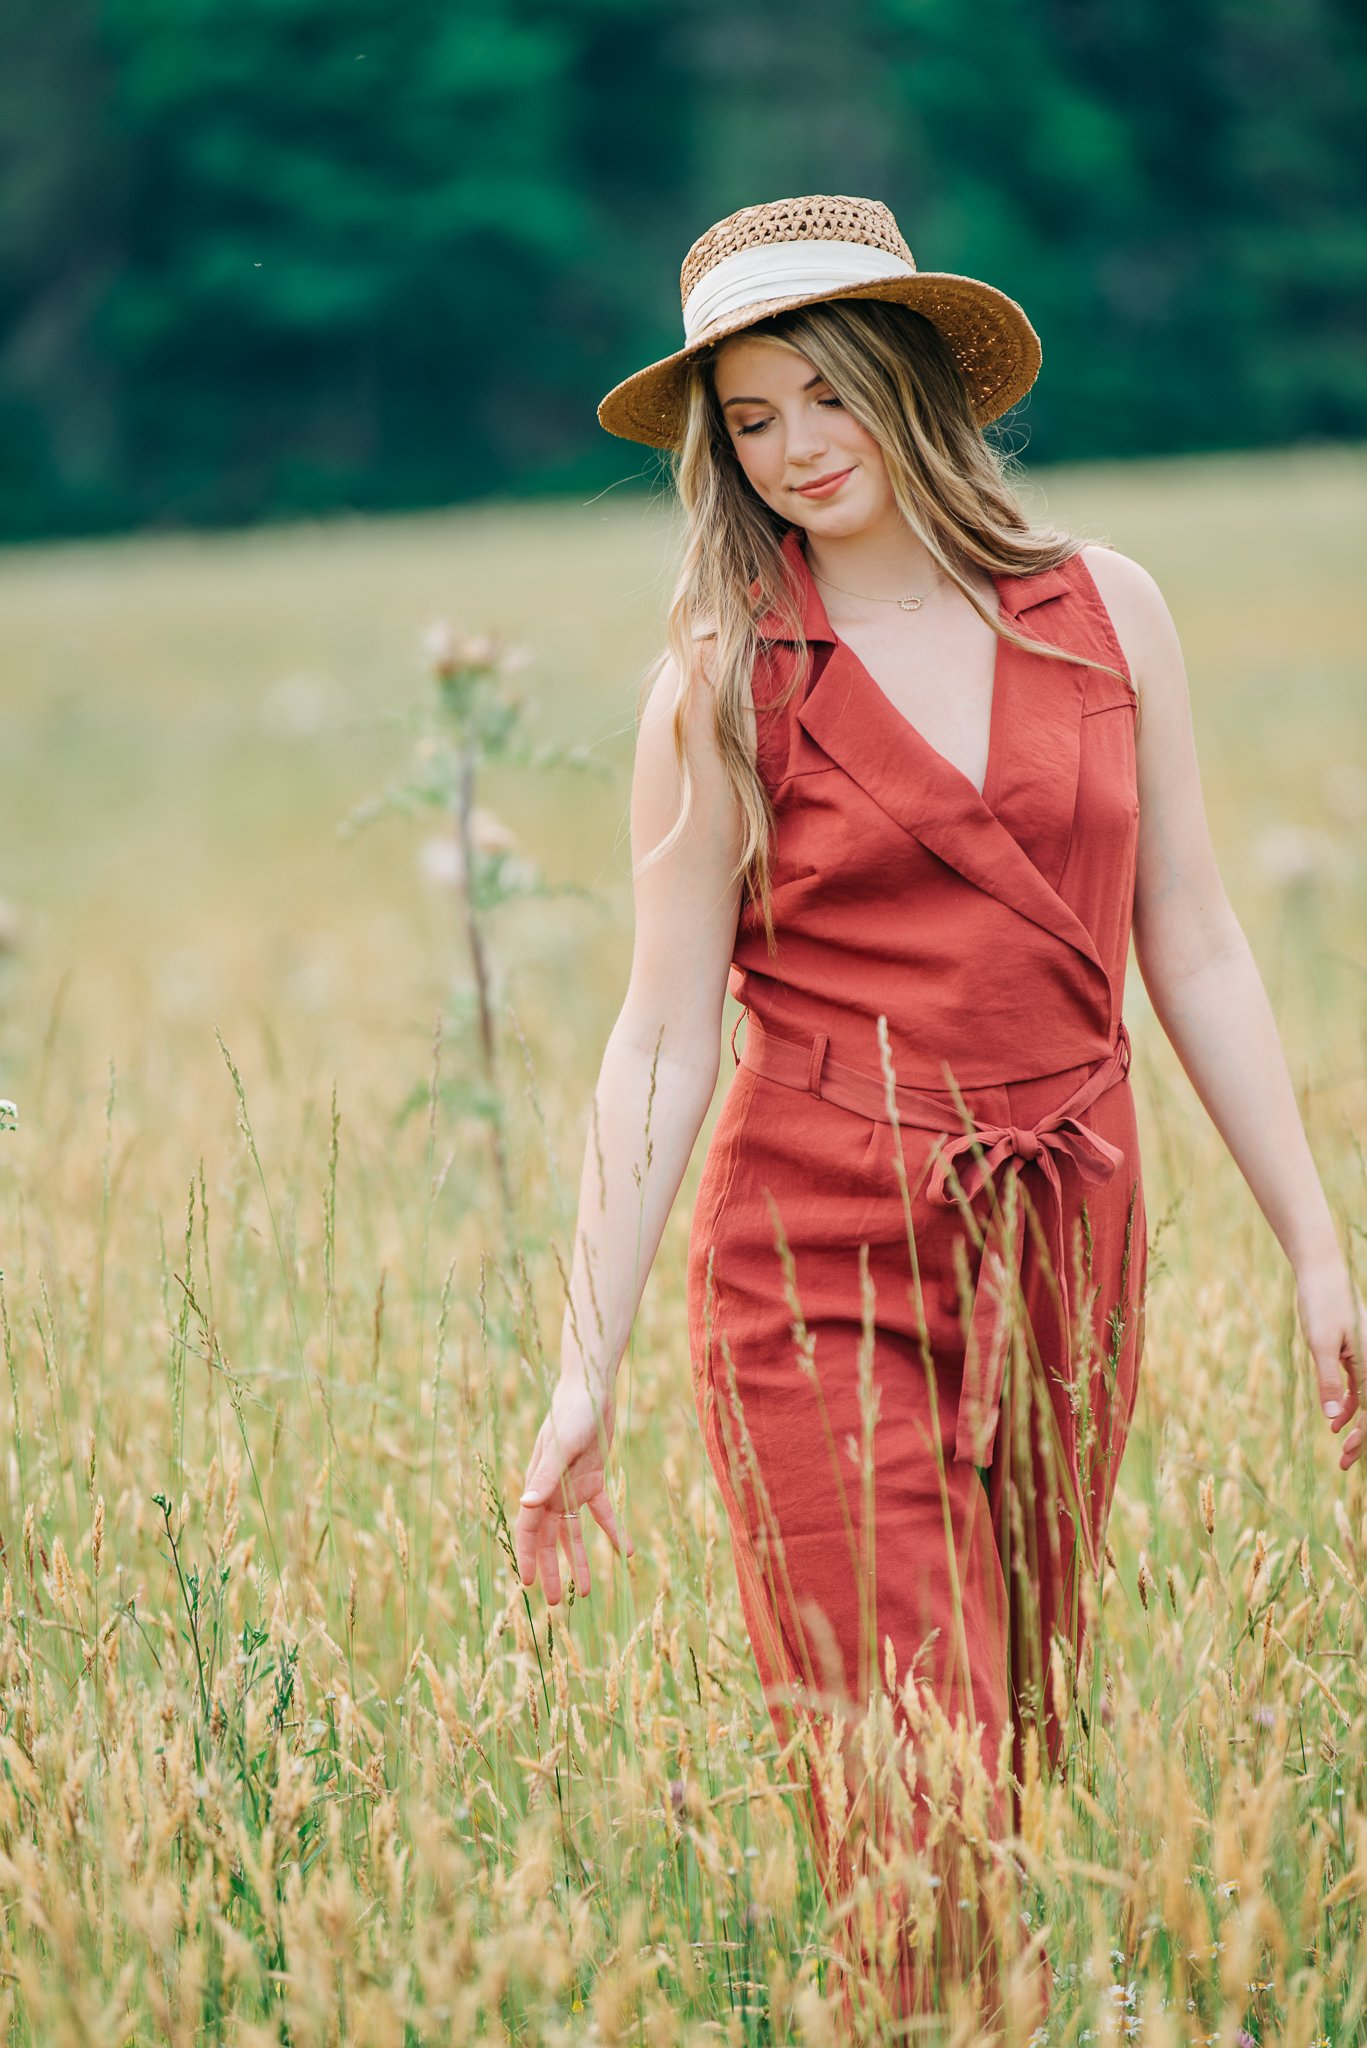 Lovely young woman walking through a country field in Burlington, NC